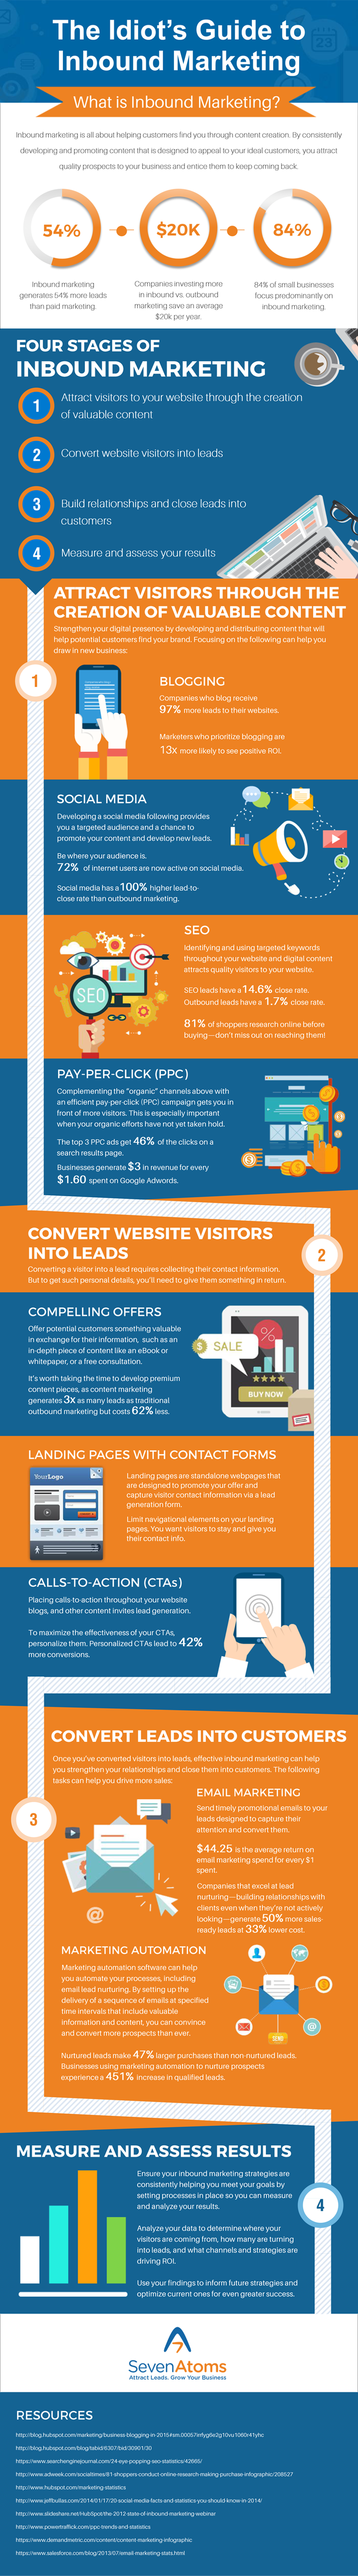 What is inbound marketing? Idiot's guide to inbound marketing - infographic